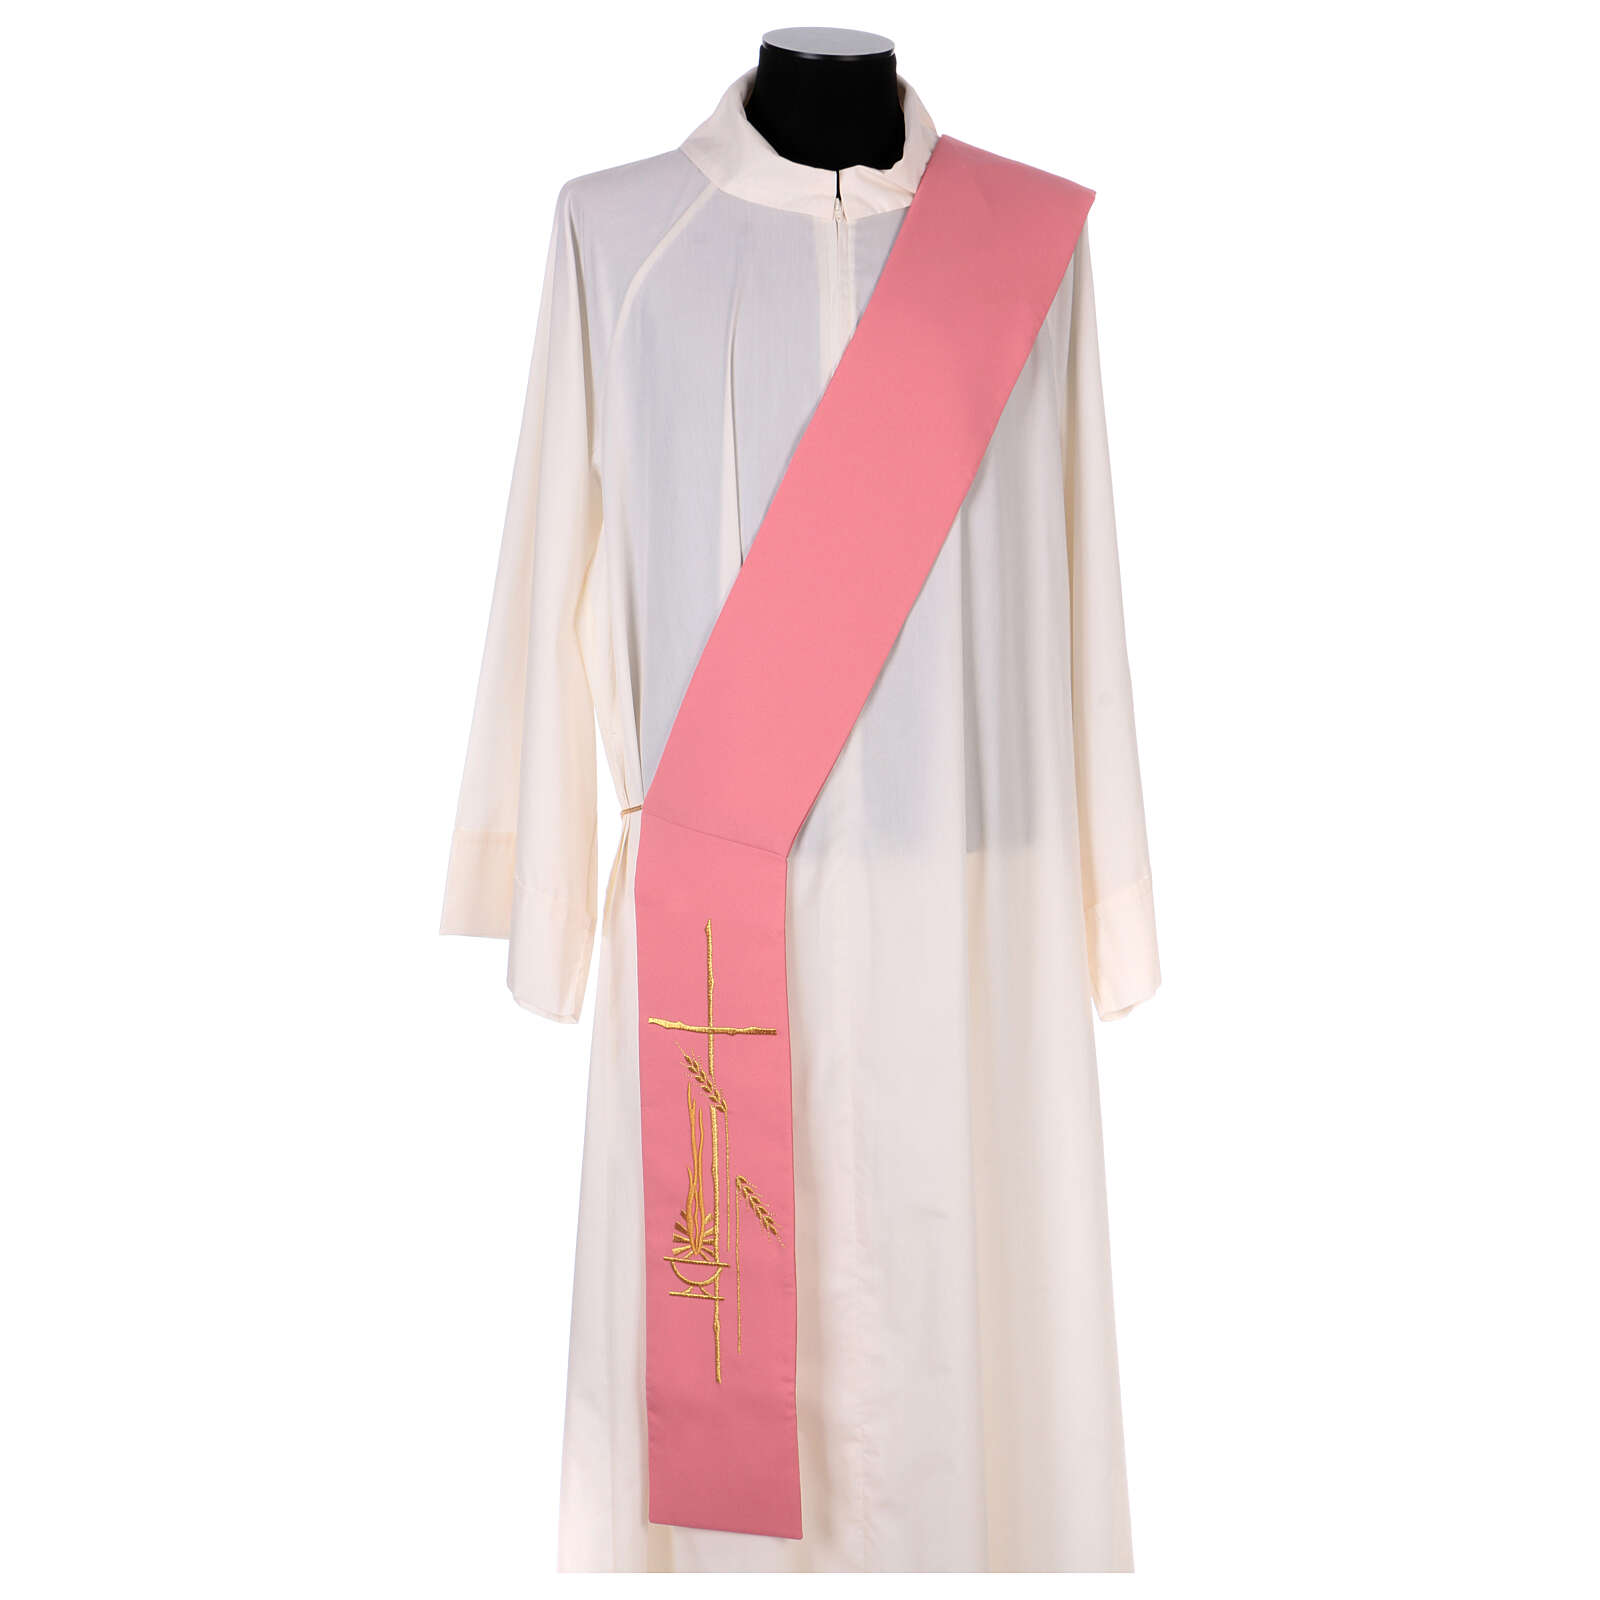 Deacon stole in pink 100% polyester lamp cross 4